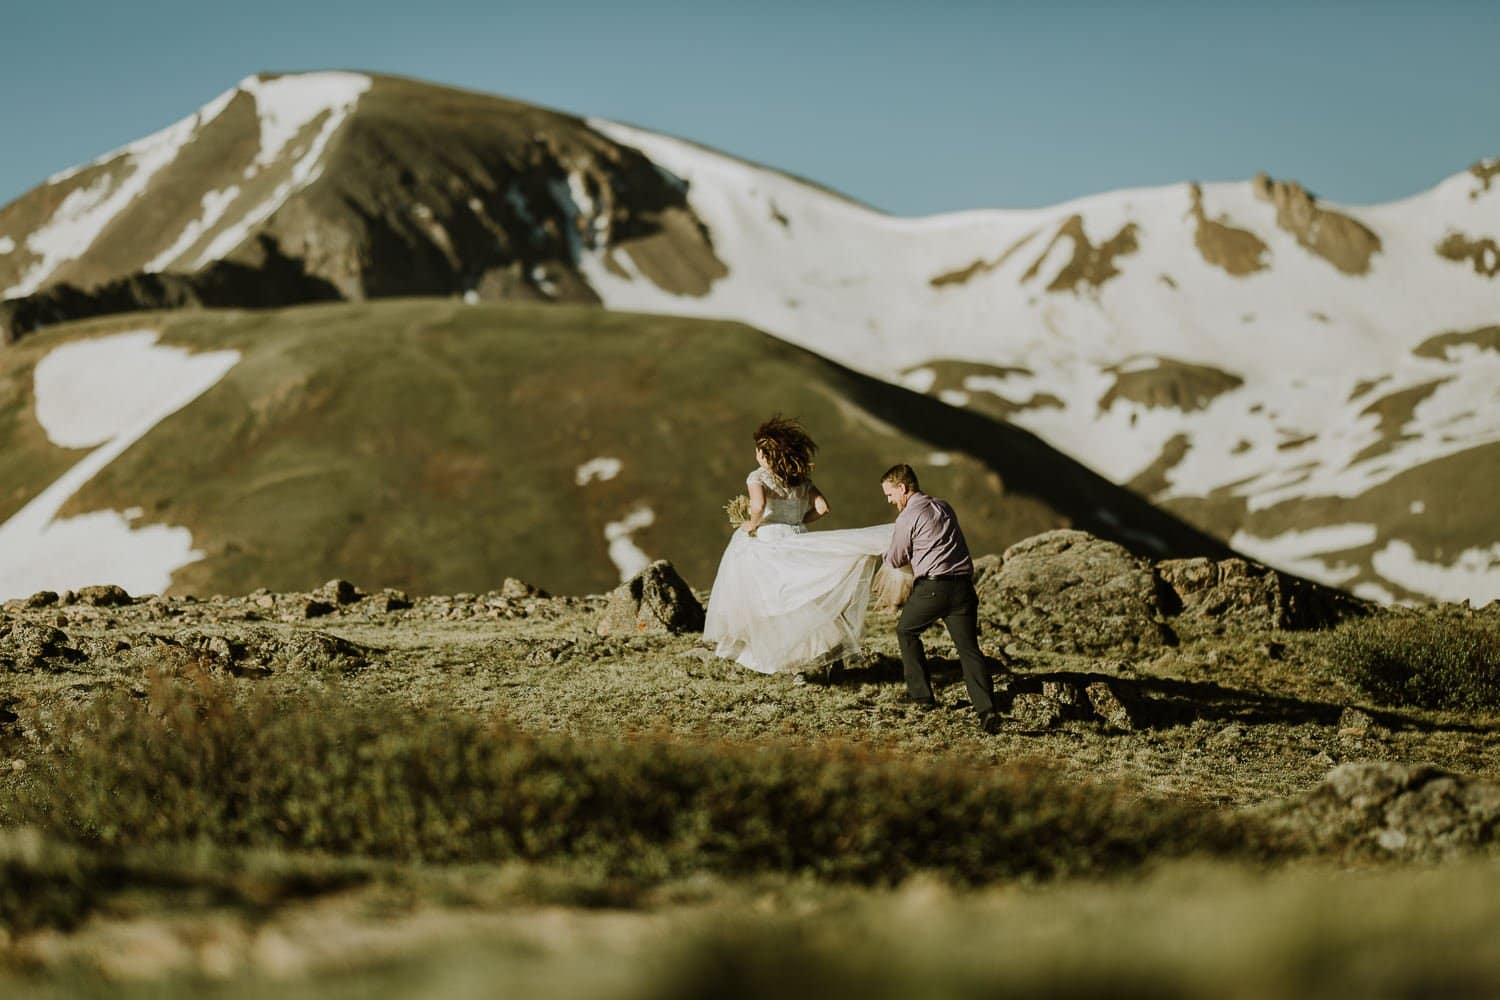 INDEPENDENCE PASS HIKING ADVENTURES|MAROON BELLS HIKING ADVENTURES|ASPEN COLORADO MOUNTAIN ADVENTURES|SNOWMASS WHITE RIVER NATIONAL FOREST ADVENTURES|ADVENTURE ELOPEMENTS|HIKING ADVENTURE|AMY+ IAN|INTIMATE WEDDING + ADVENTUROUS ELOPEMENT PHOTOGRAPHER